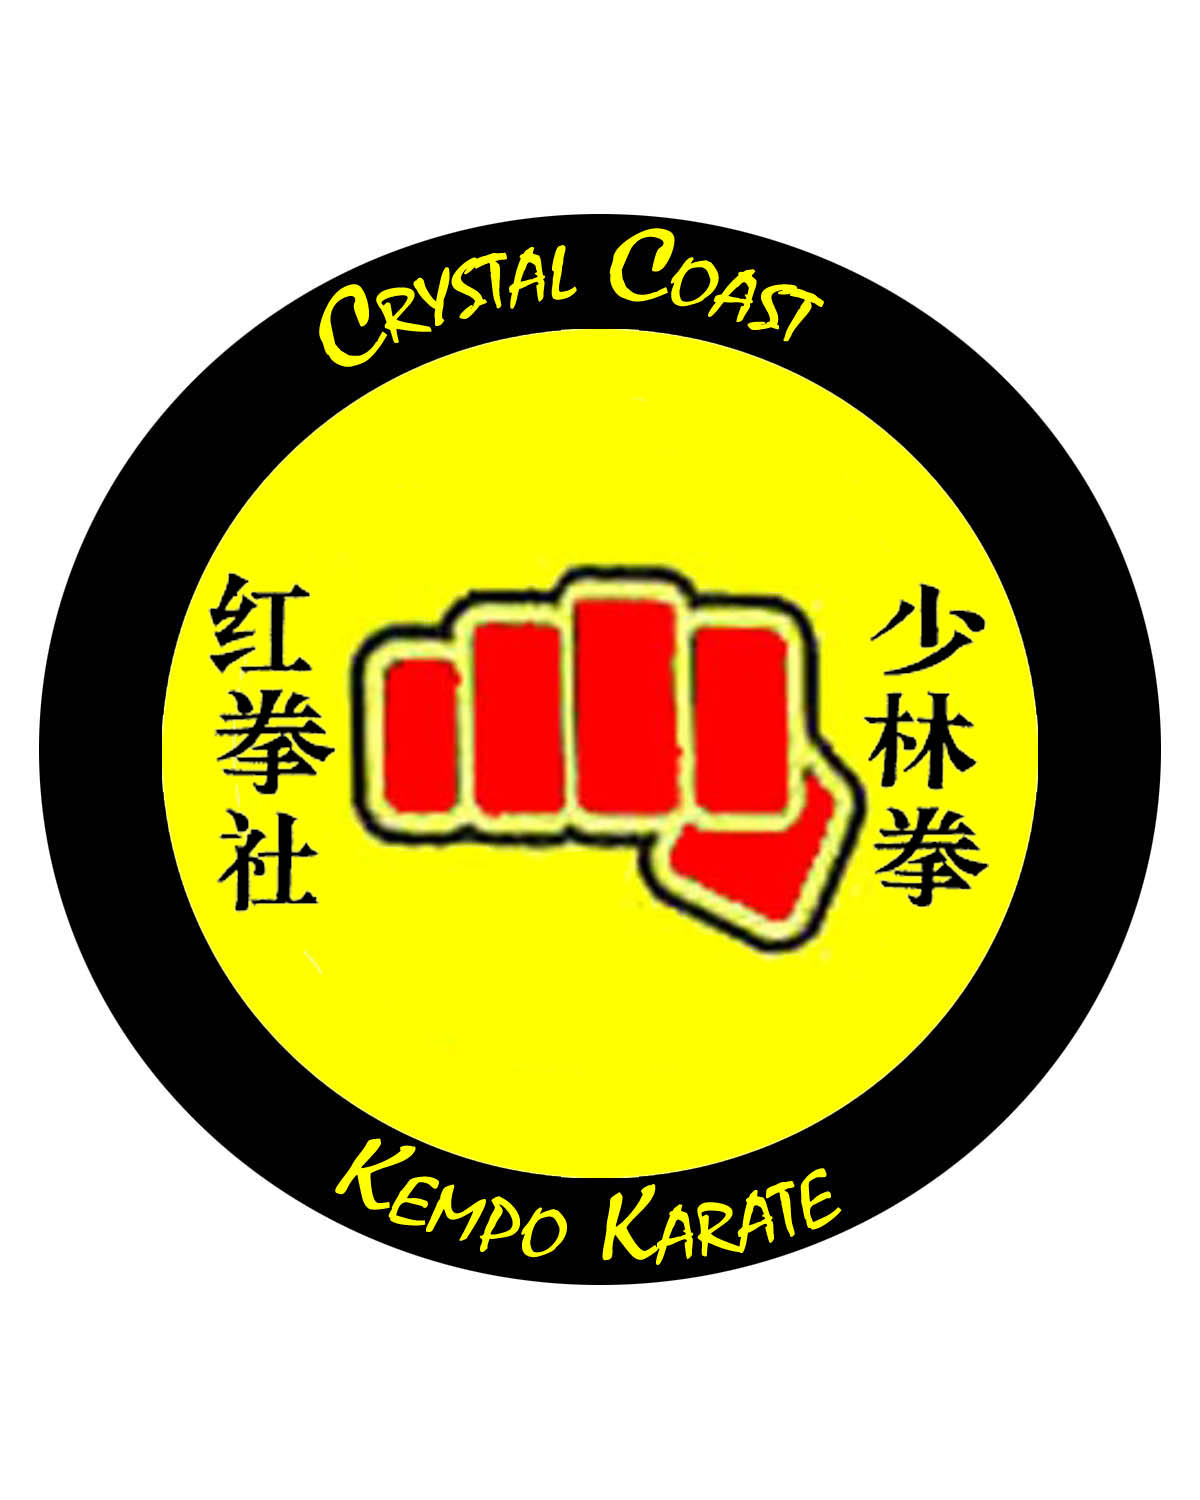 Web home of Crystal Coast Kempo Karate